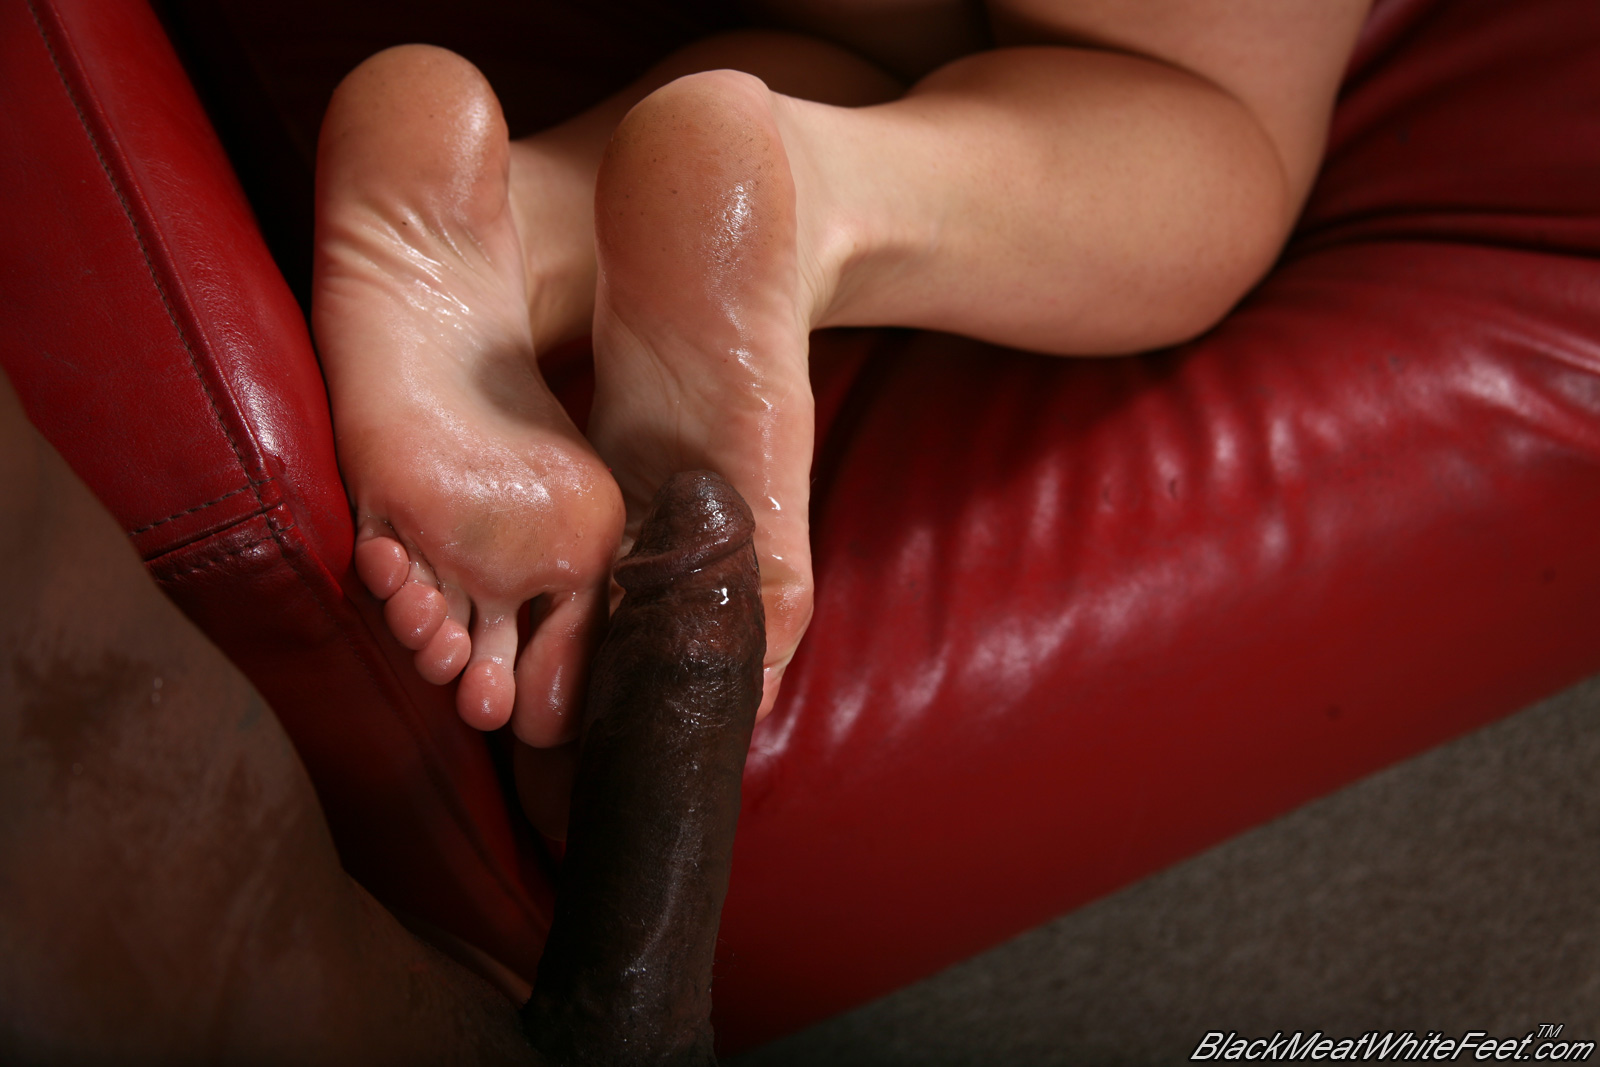 Black foot fetish videos